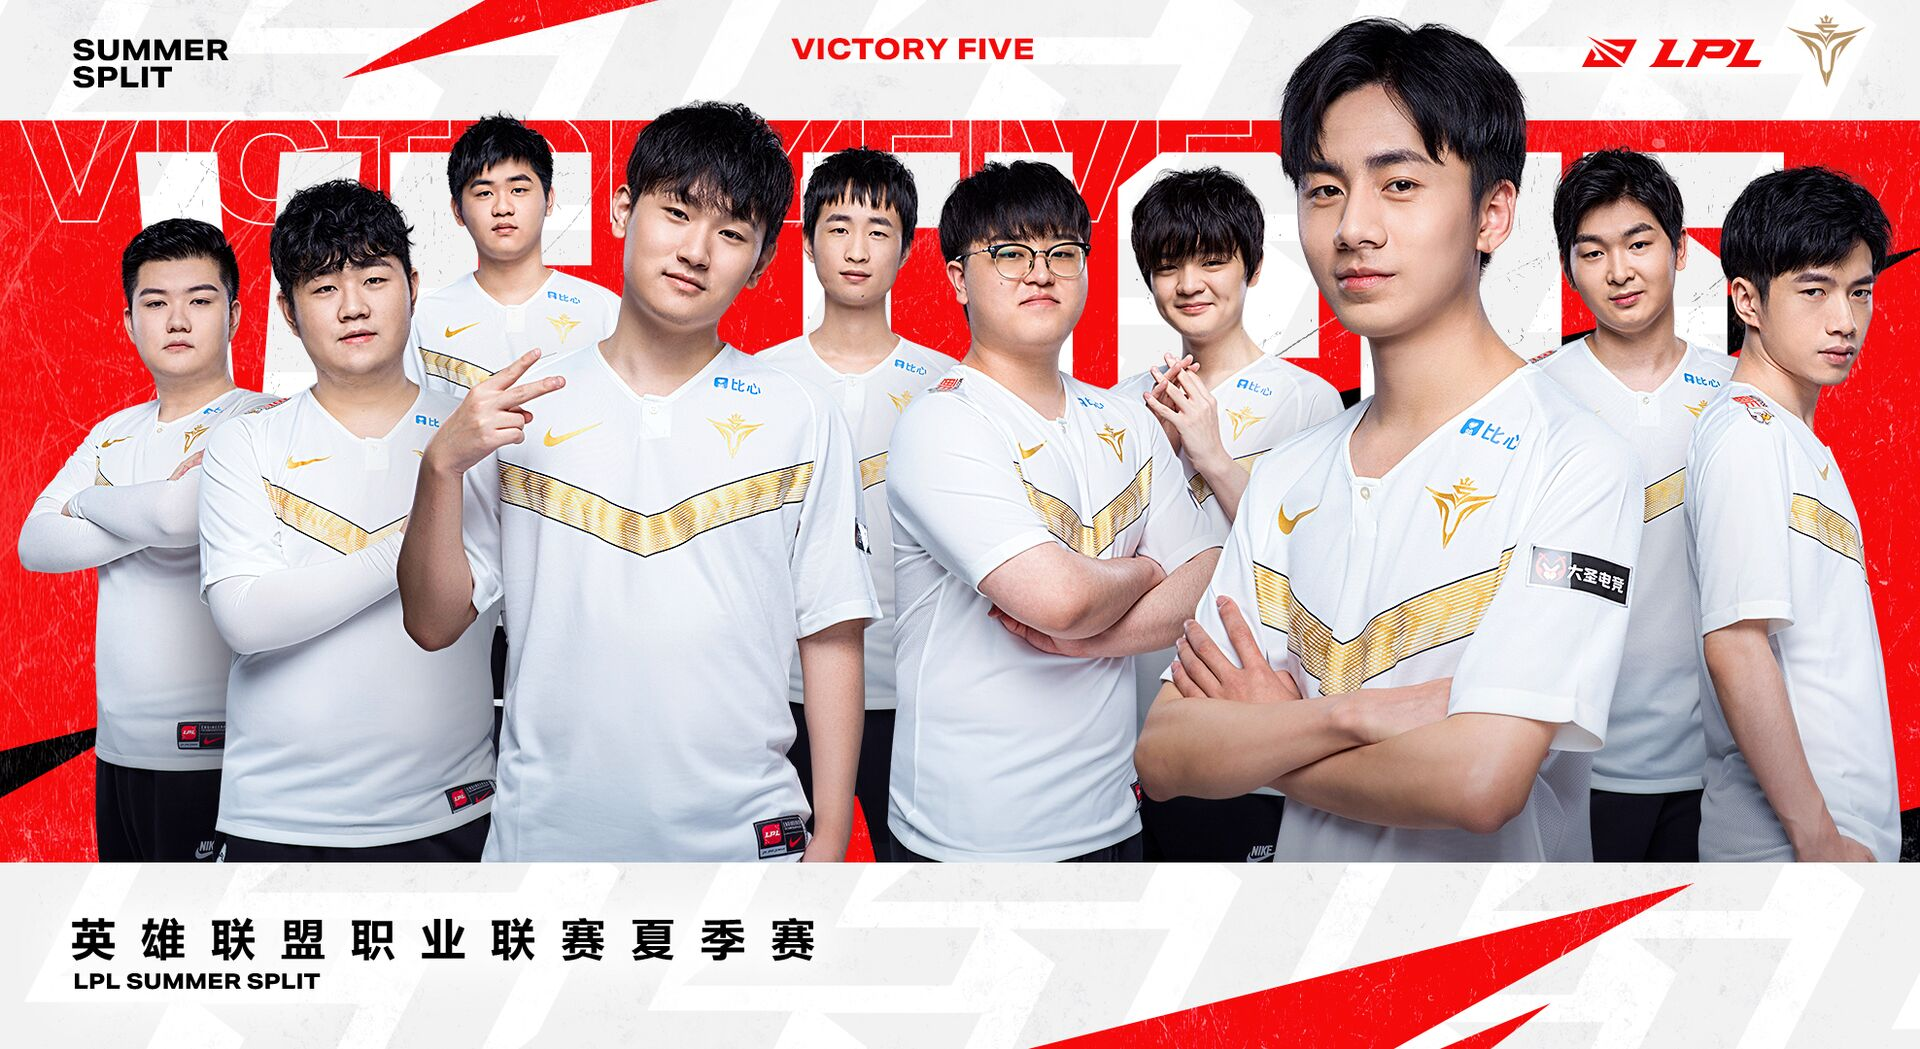 victory five roster